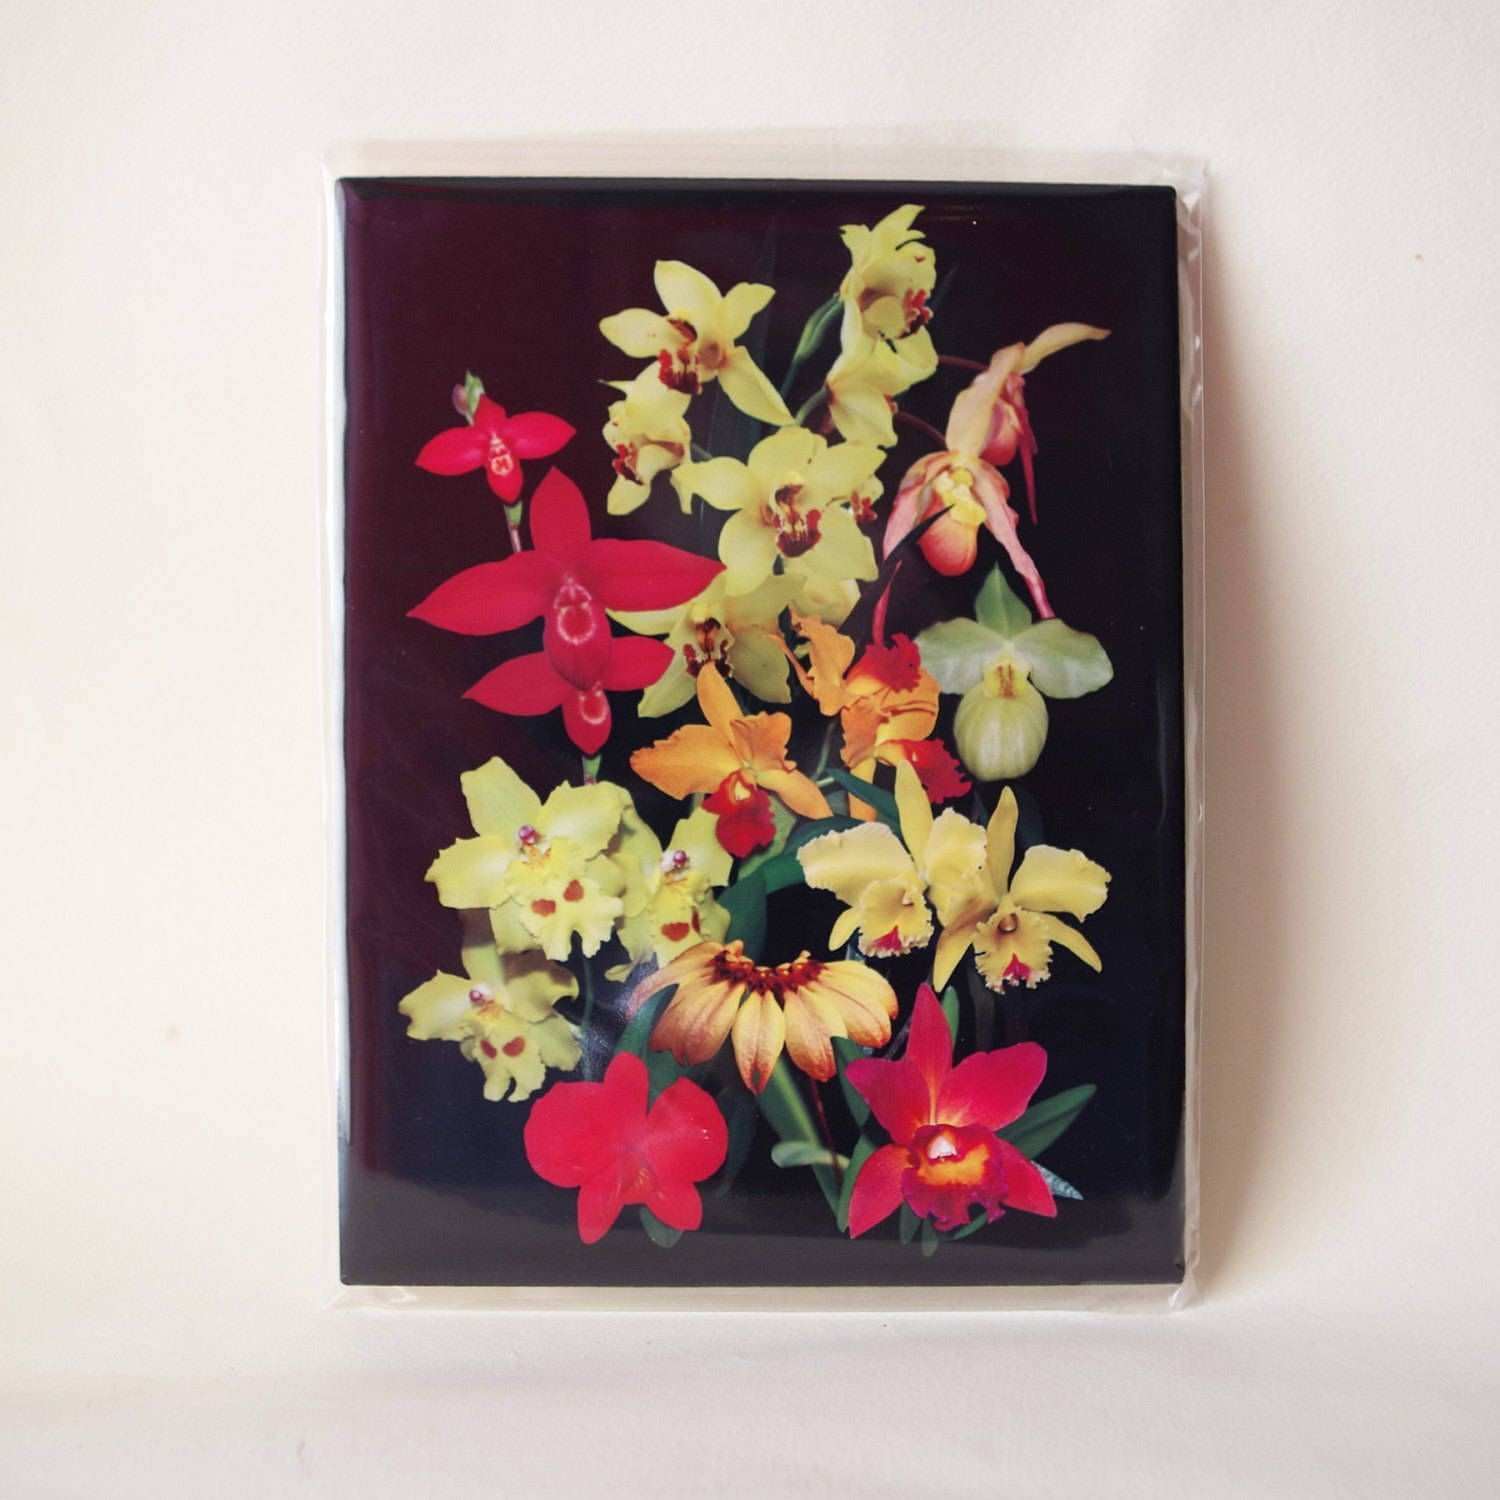 Orchid ceramic tile home decor kitchen decor housewarming t